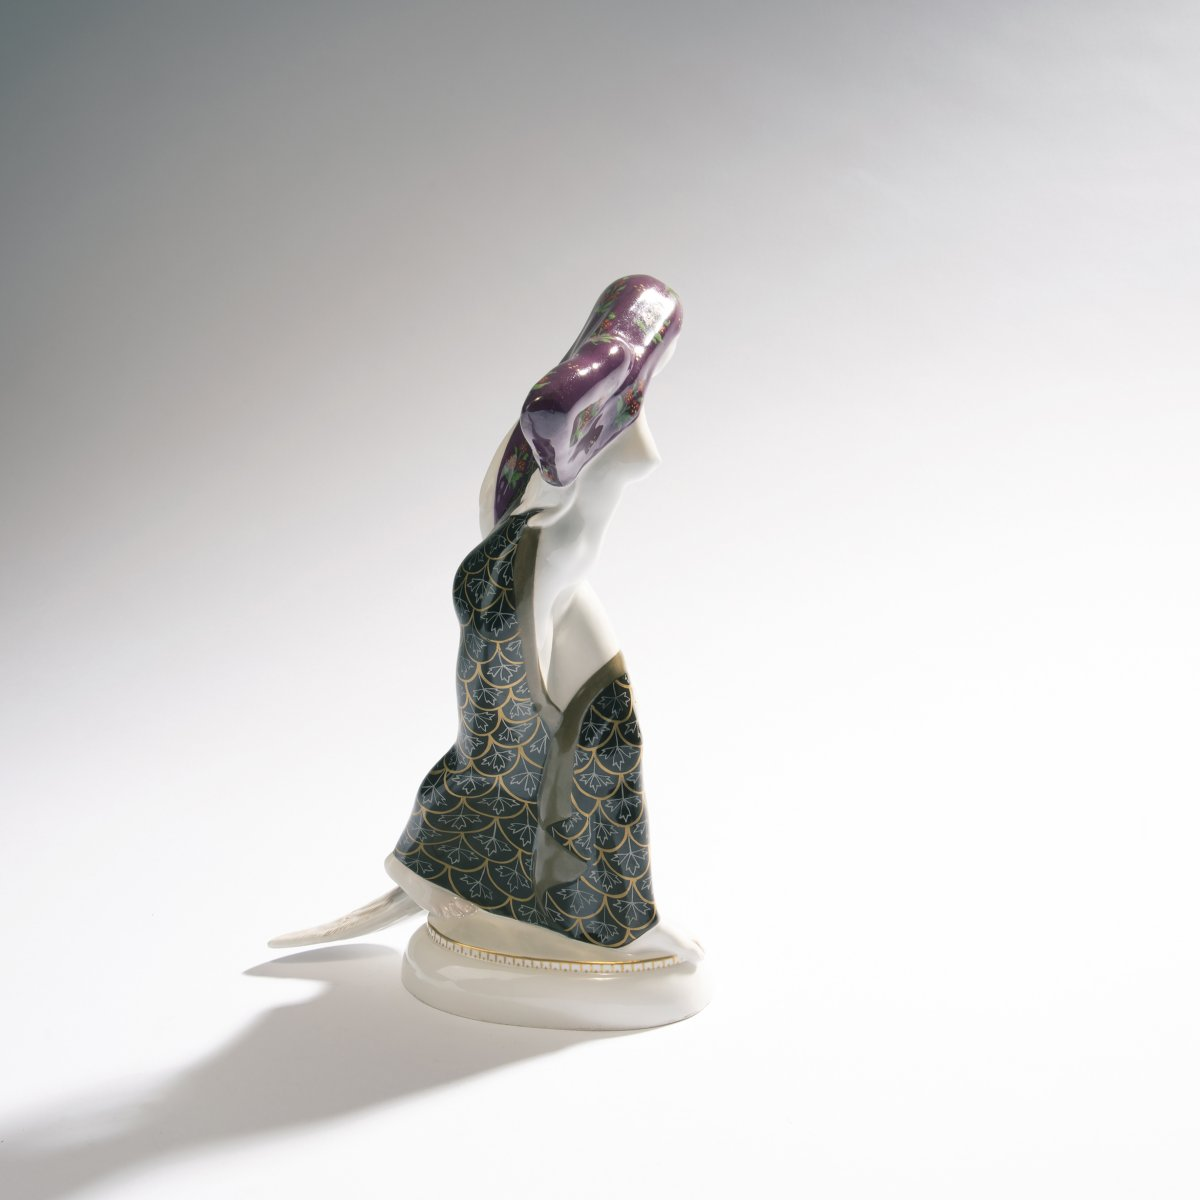 Adolph Amberg, 'Indian woman', 1910'Indian woman', 1910H. 26 cm. Made by KPM Berlin. Porcelain, - Image 2 of 3